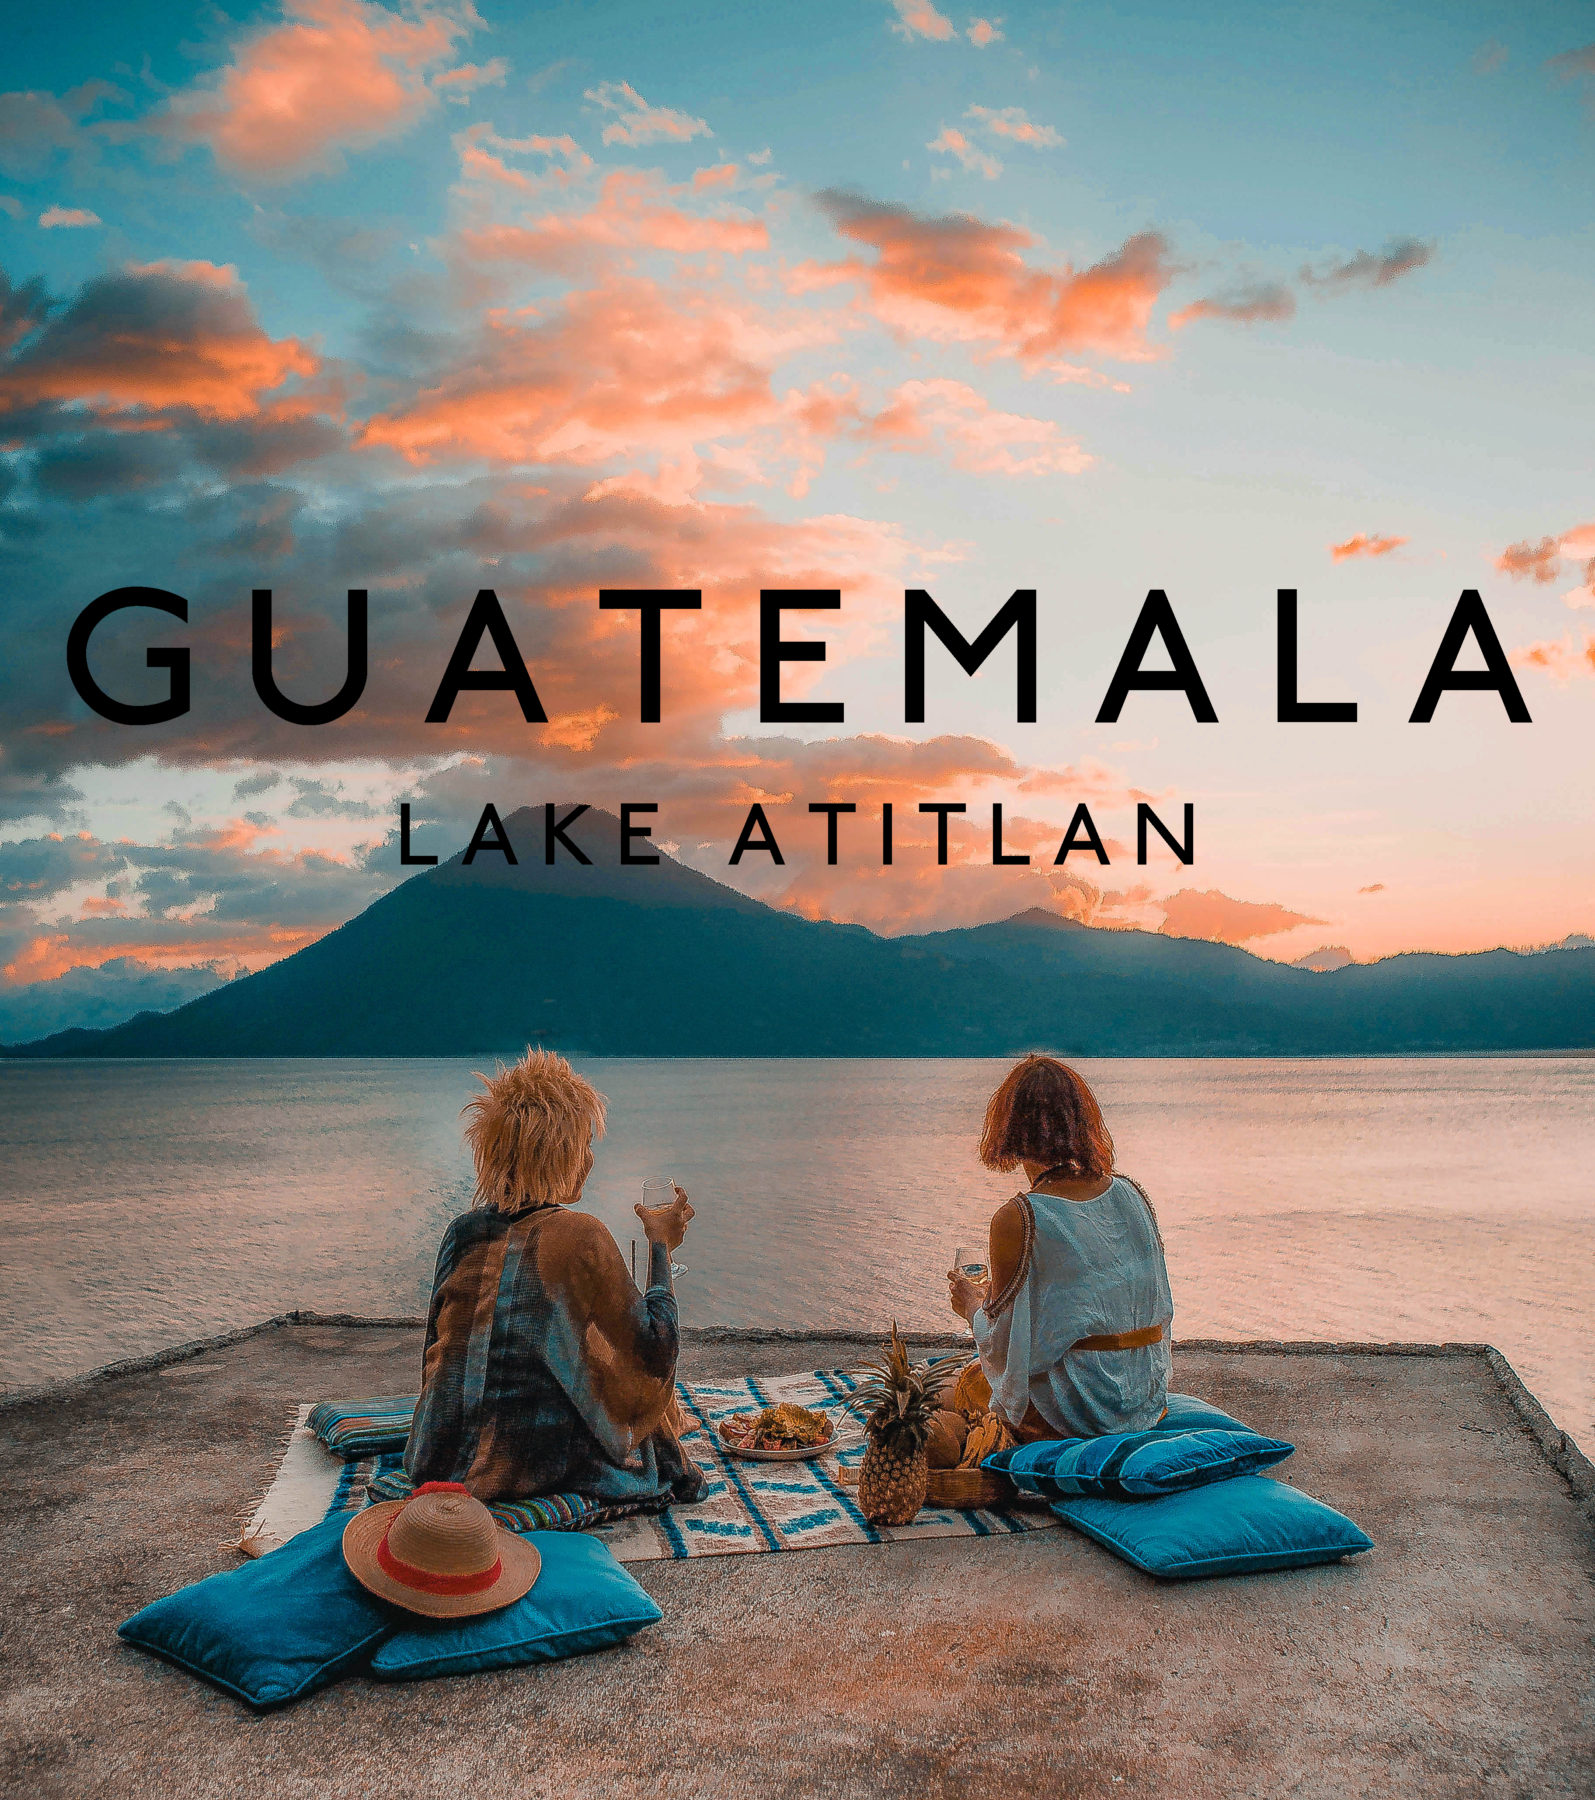 guatemala lake atitlan lago central america most beautiful lake in the world